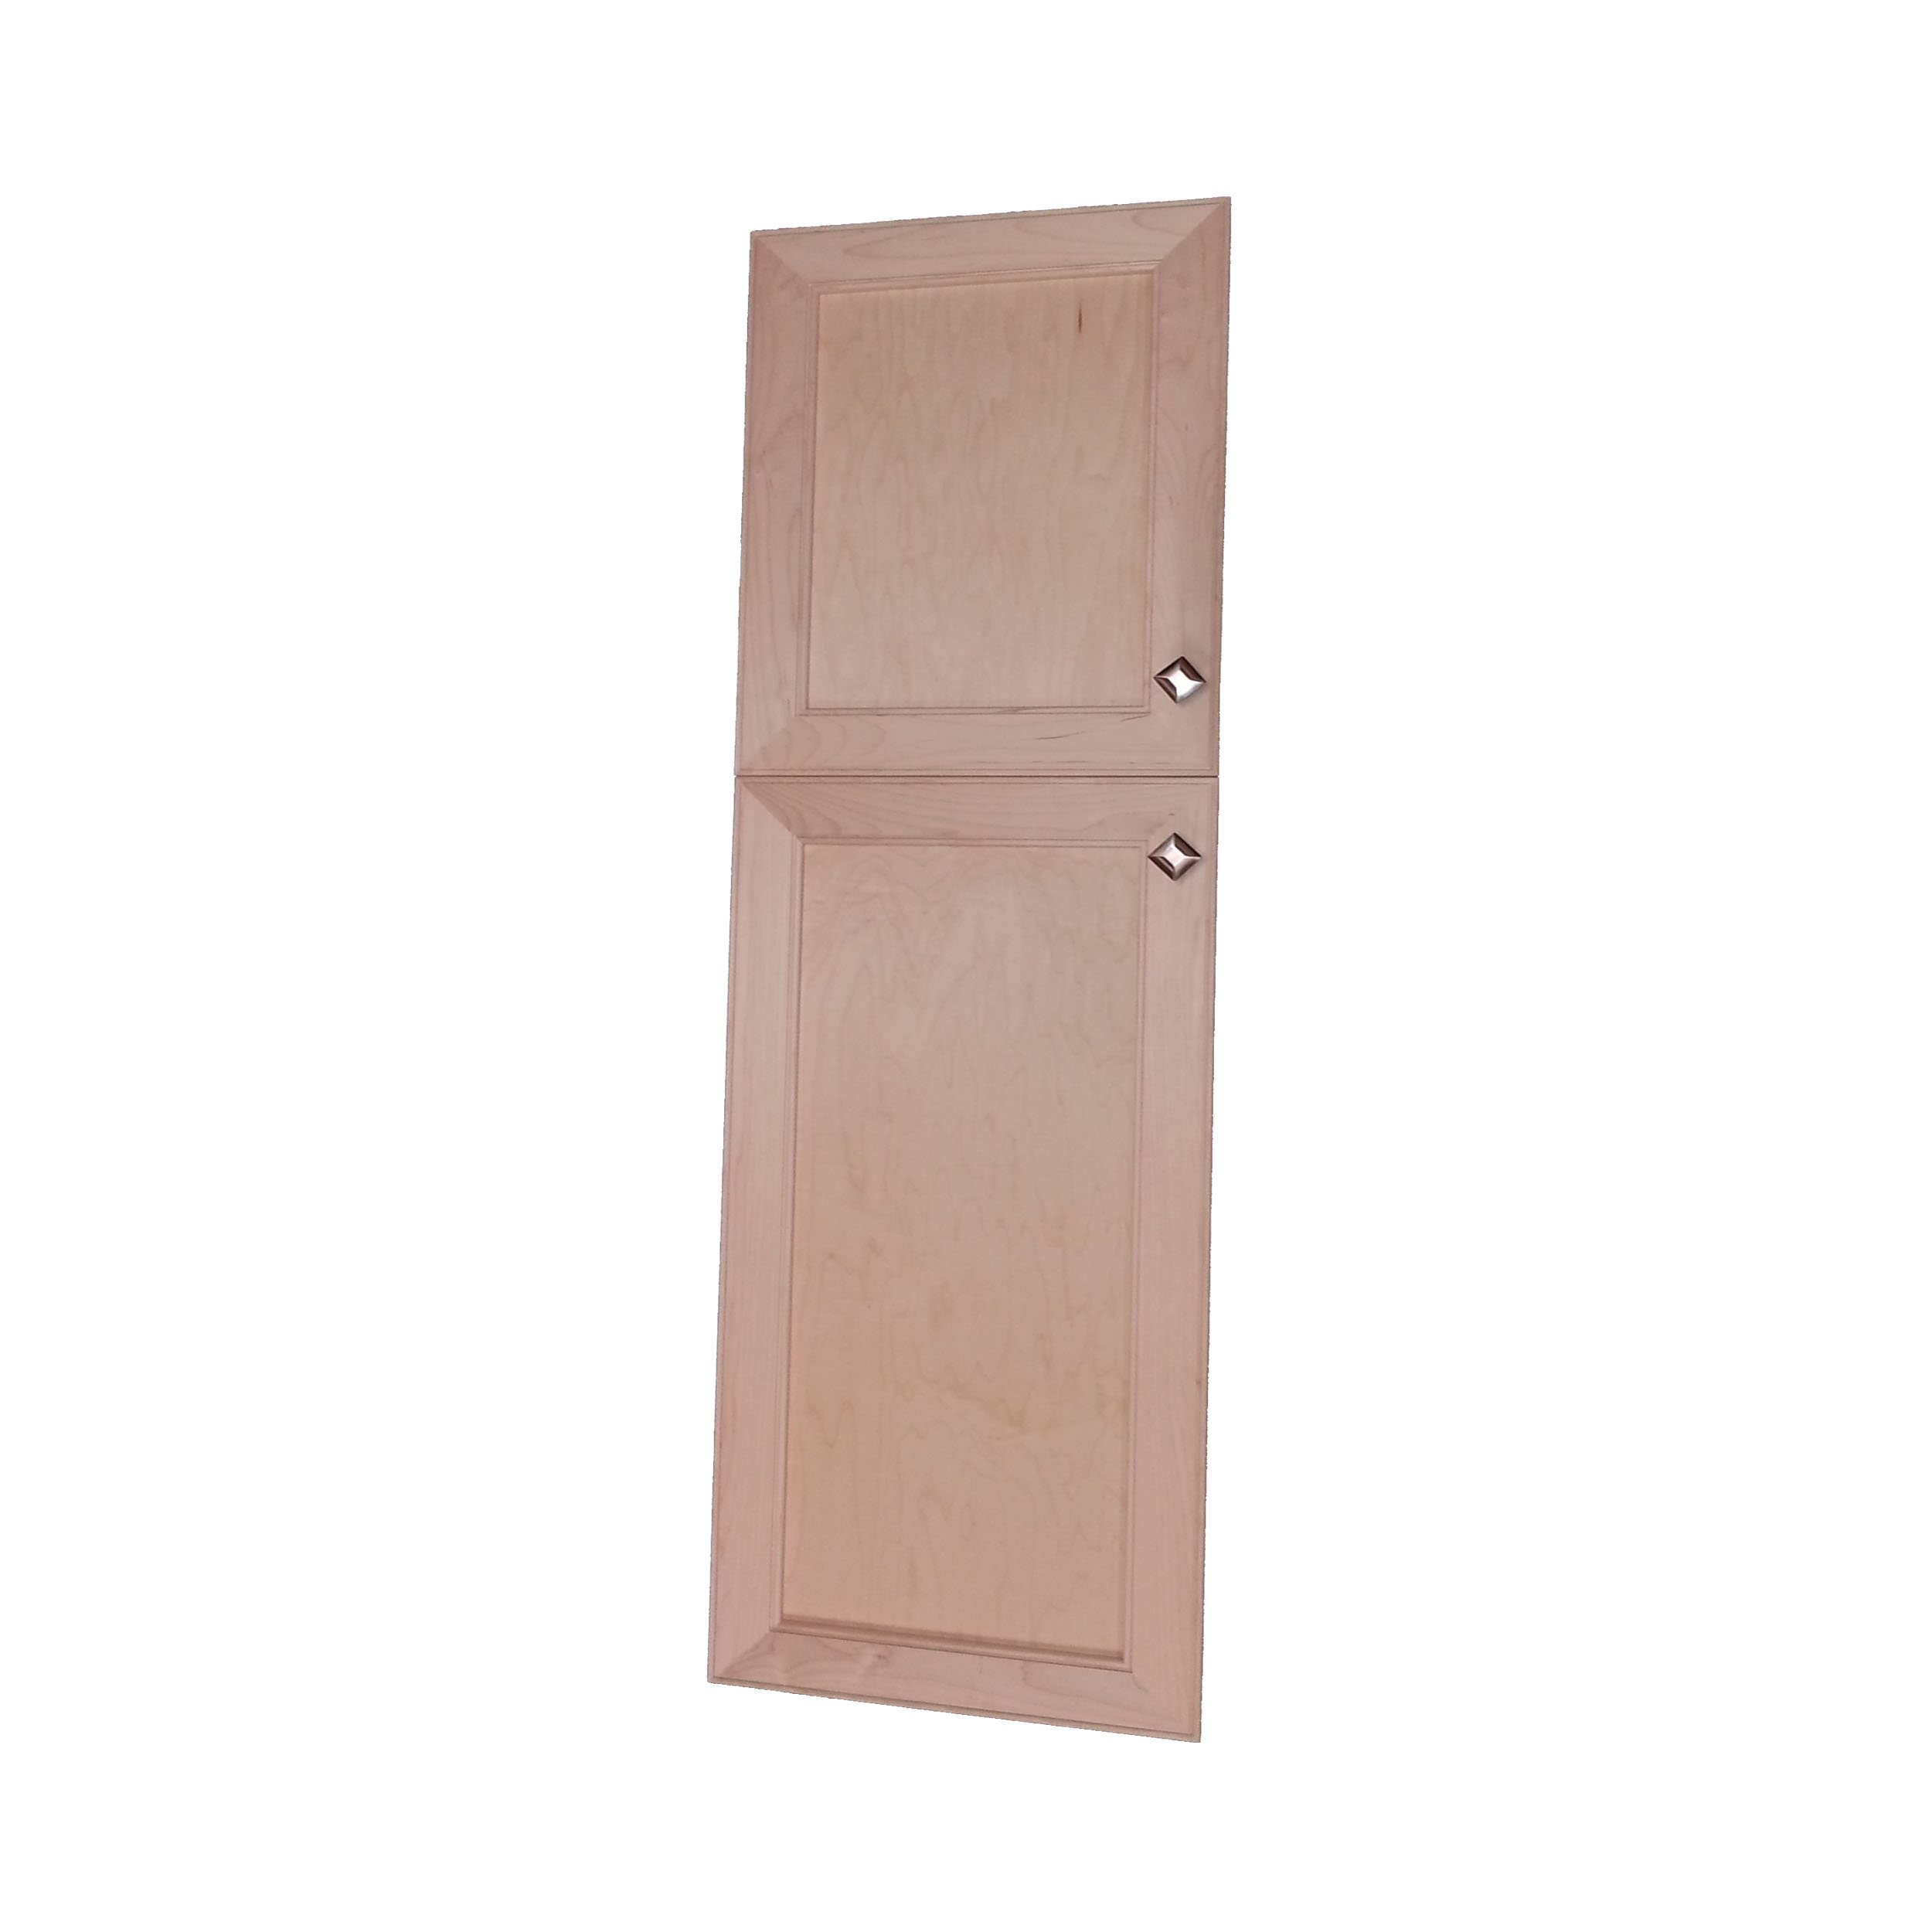 Wood Cabinets Direct MAX-SQ-248-2DRP-18/30 Direct Maxwell Recessed Two Door Frameless 18/30 Pantry Cabinet, 48''